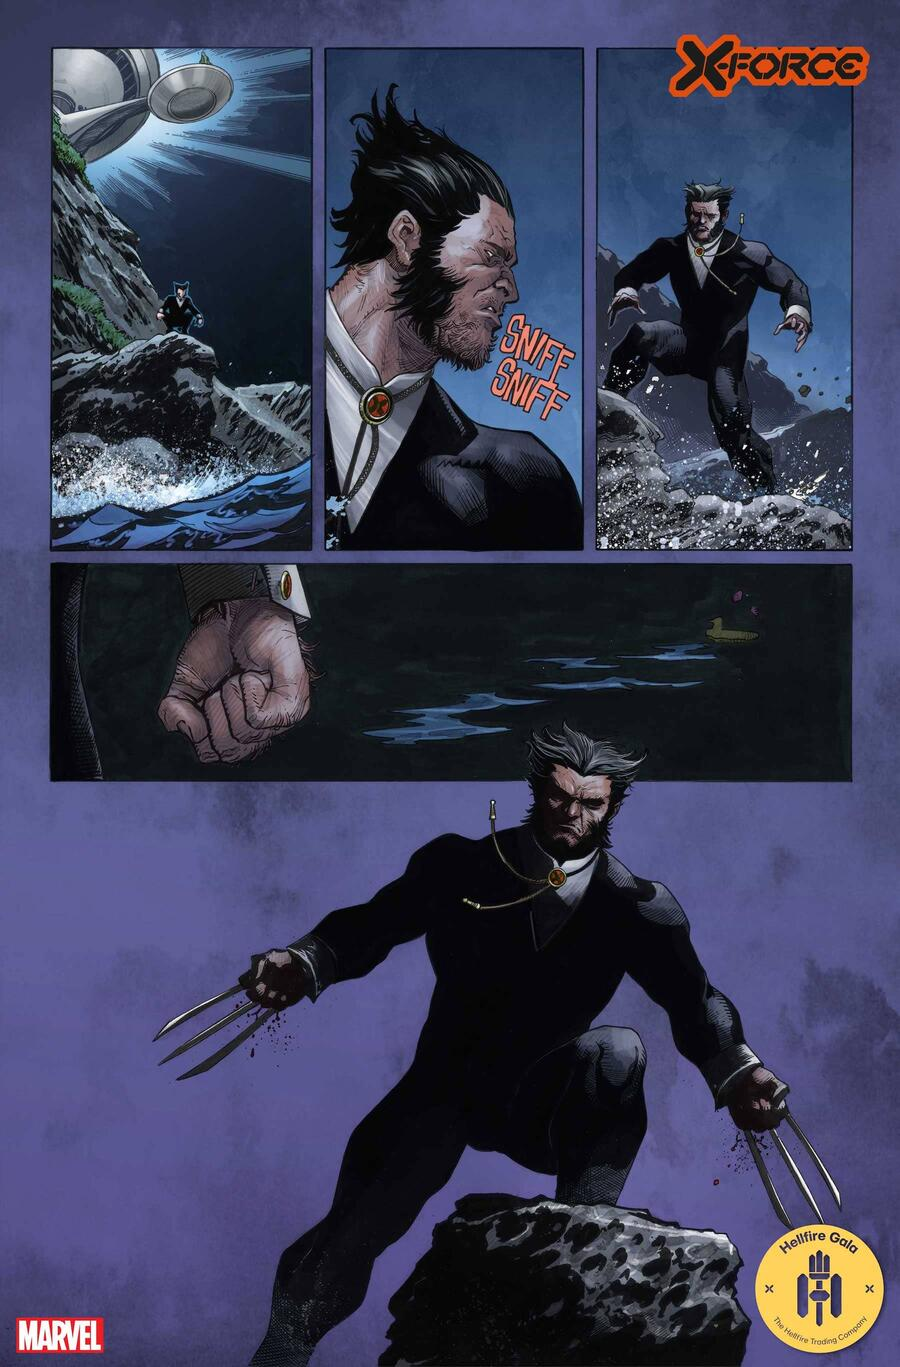 X-FORCE #20 preview art by Joshua Cassara with colors by GURU-eFX